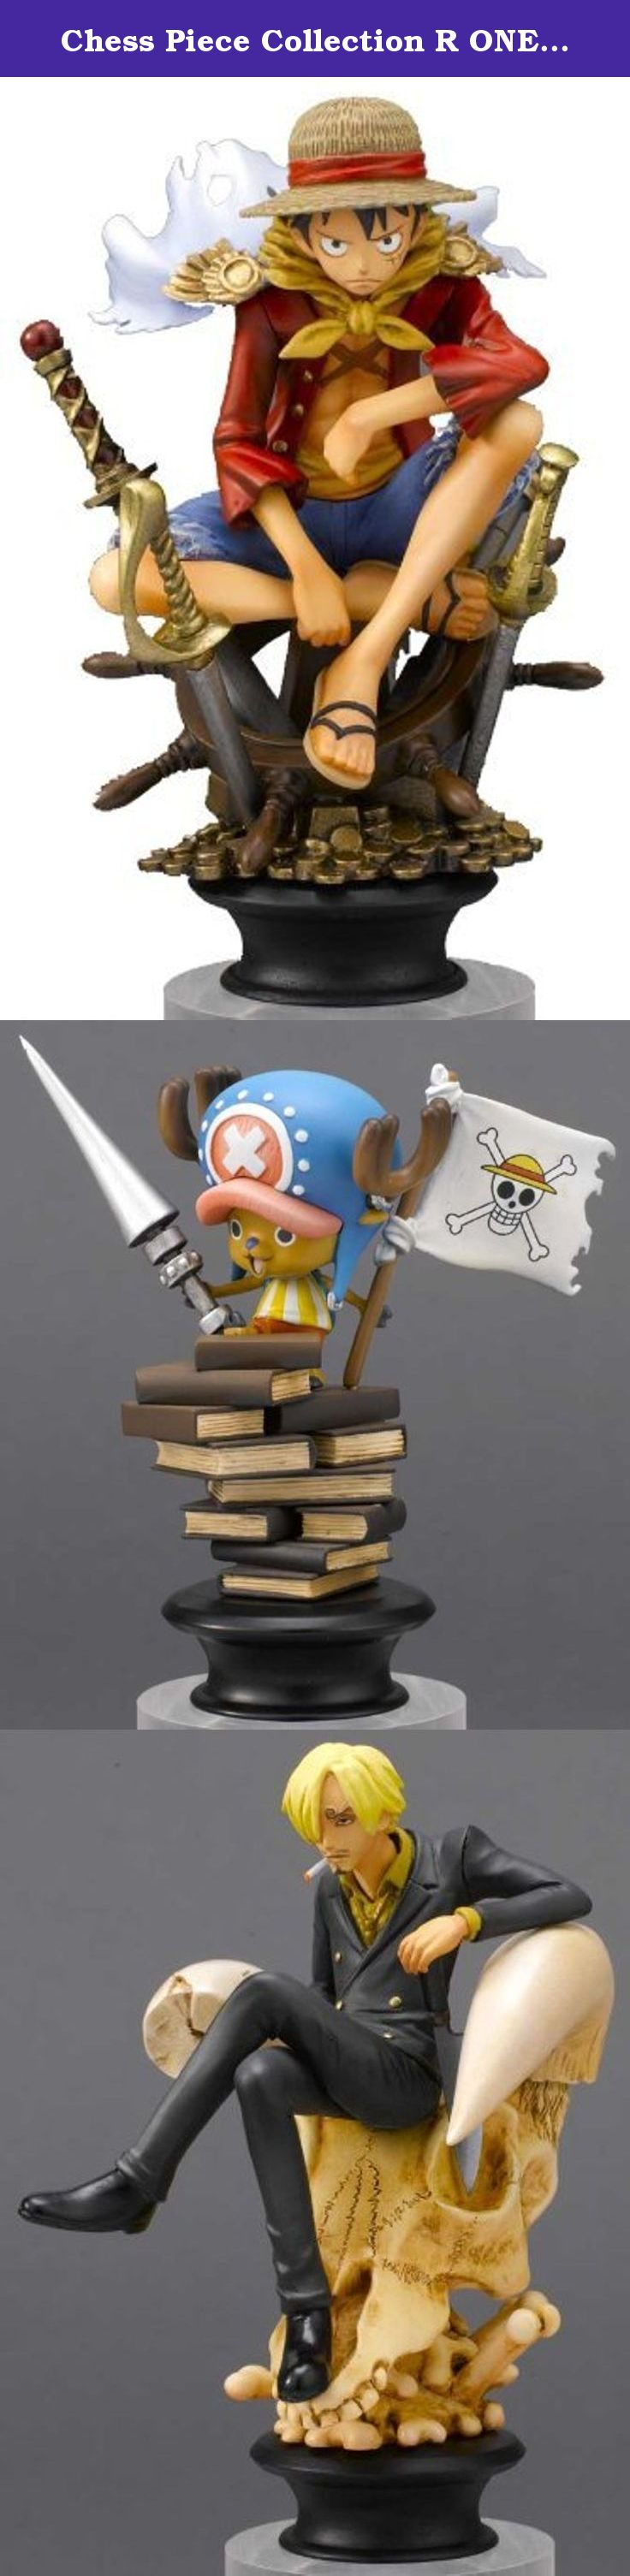 Chess piece collection r onepiece vol1 box its